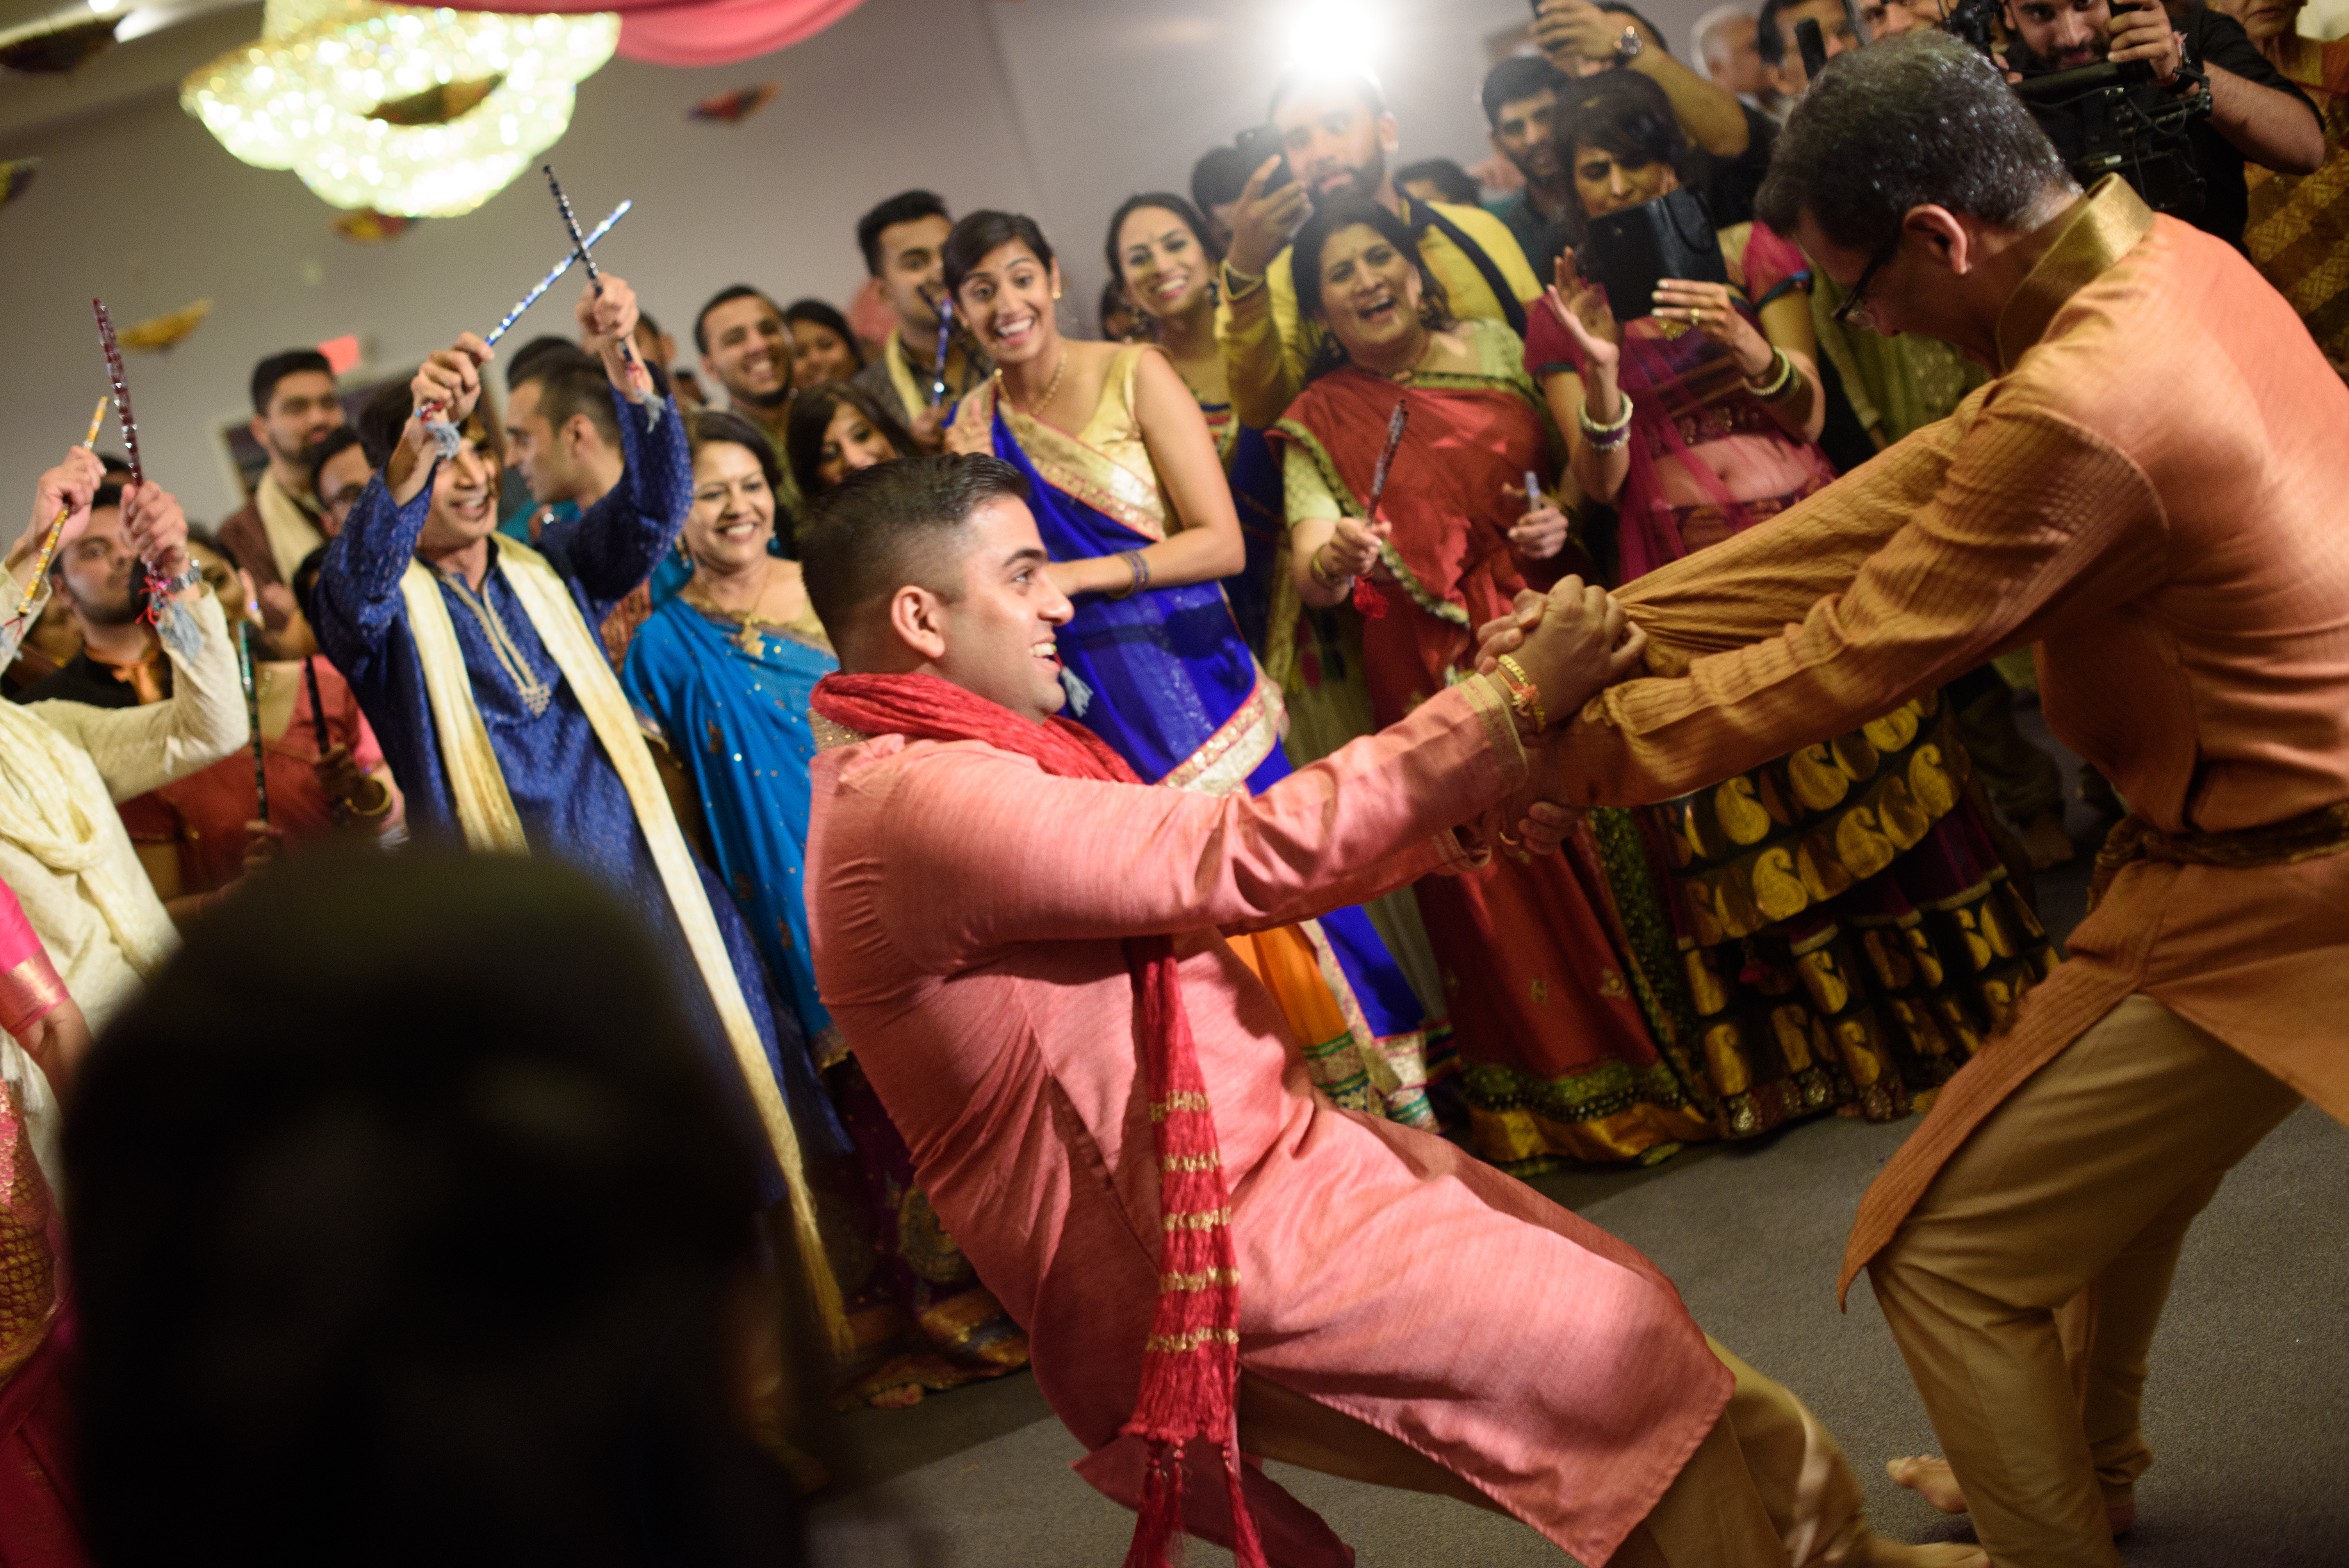 Chic Indian Wedding - Chandai Events., Inc